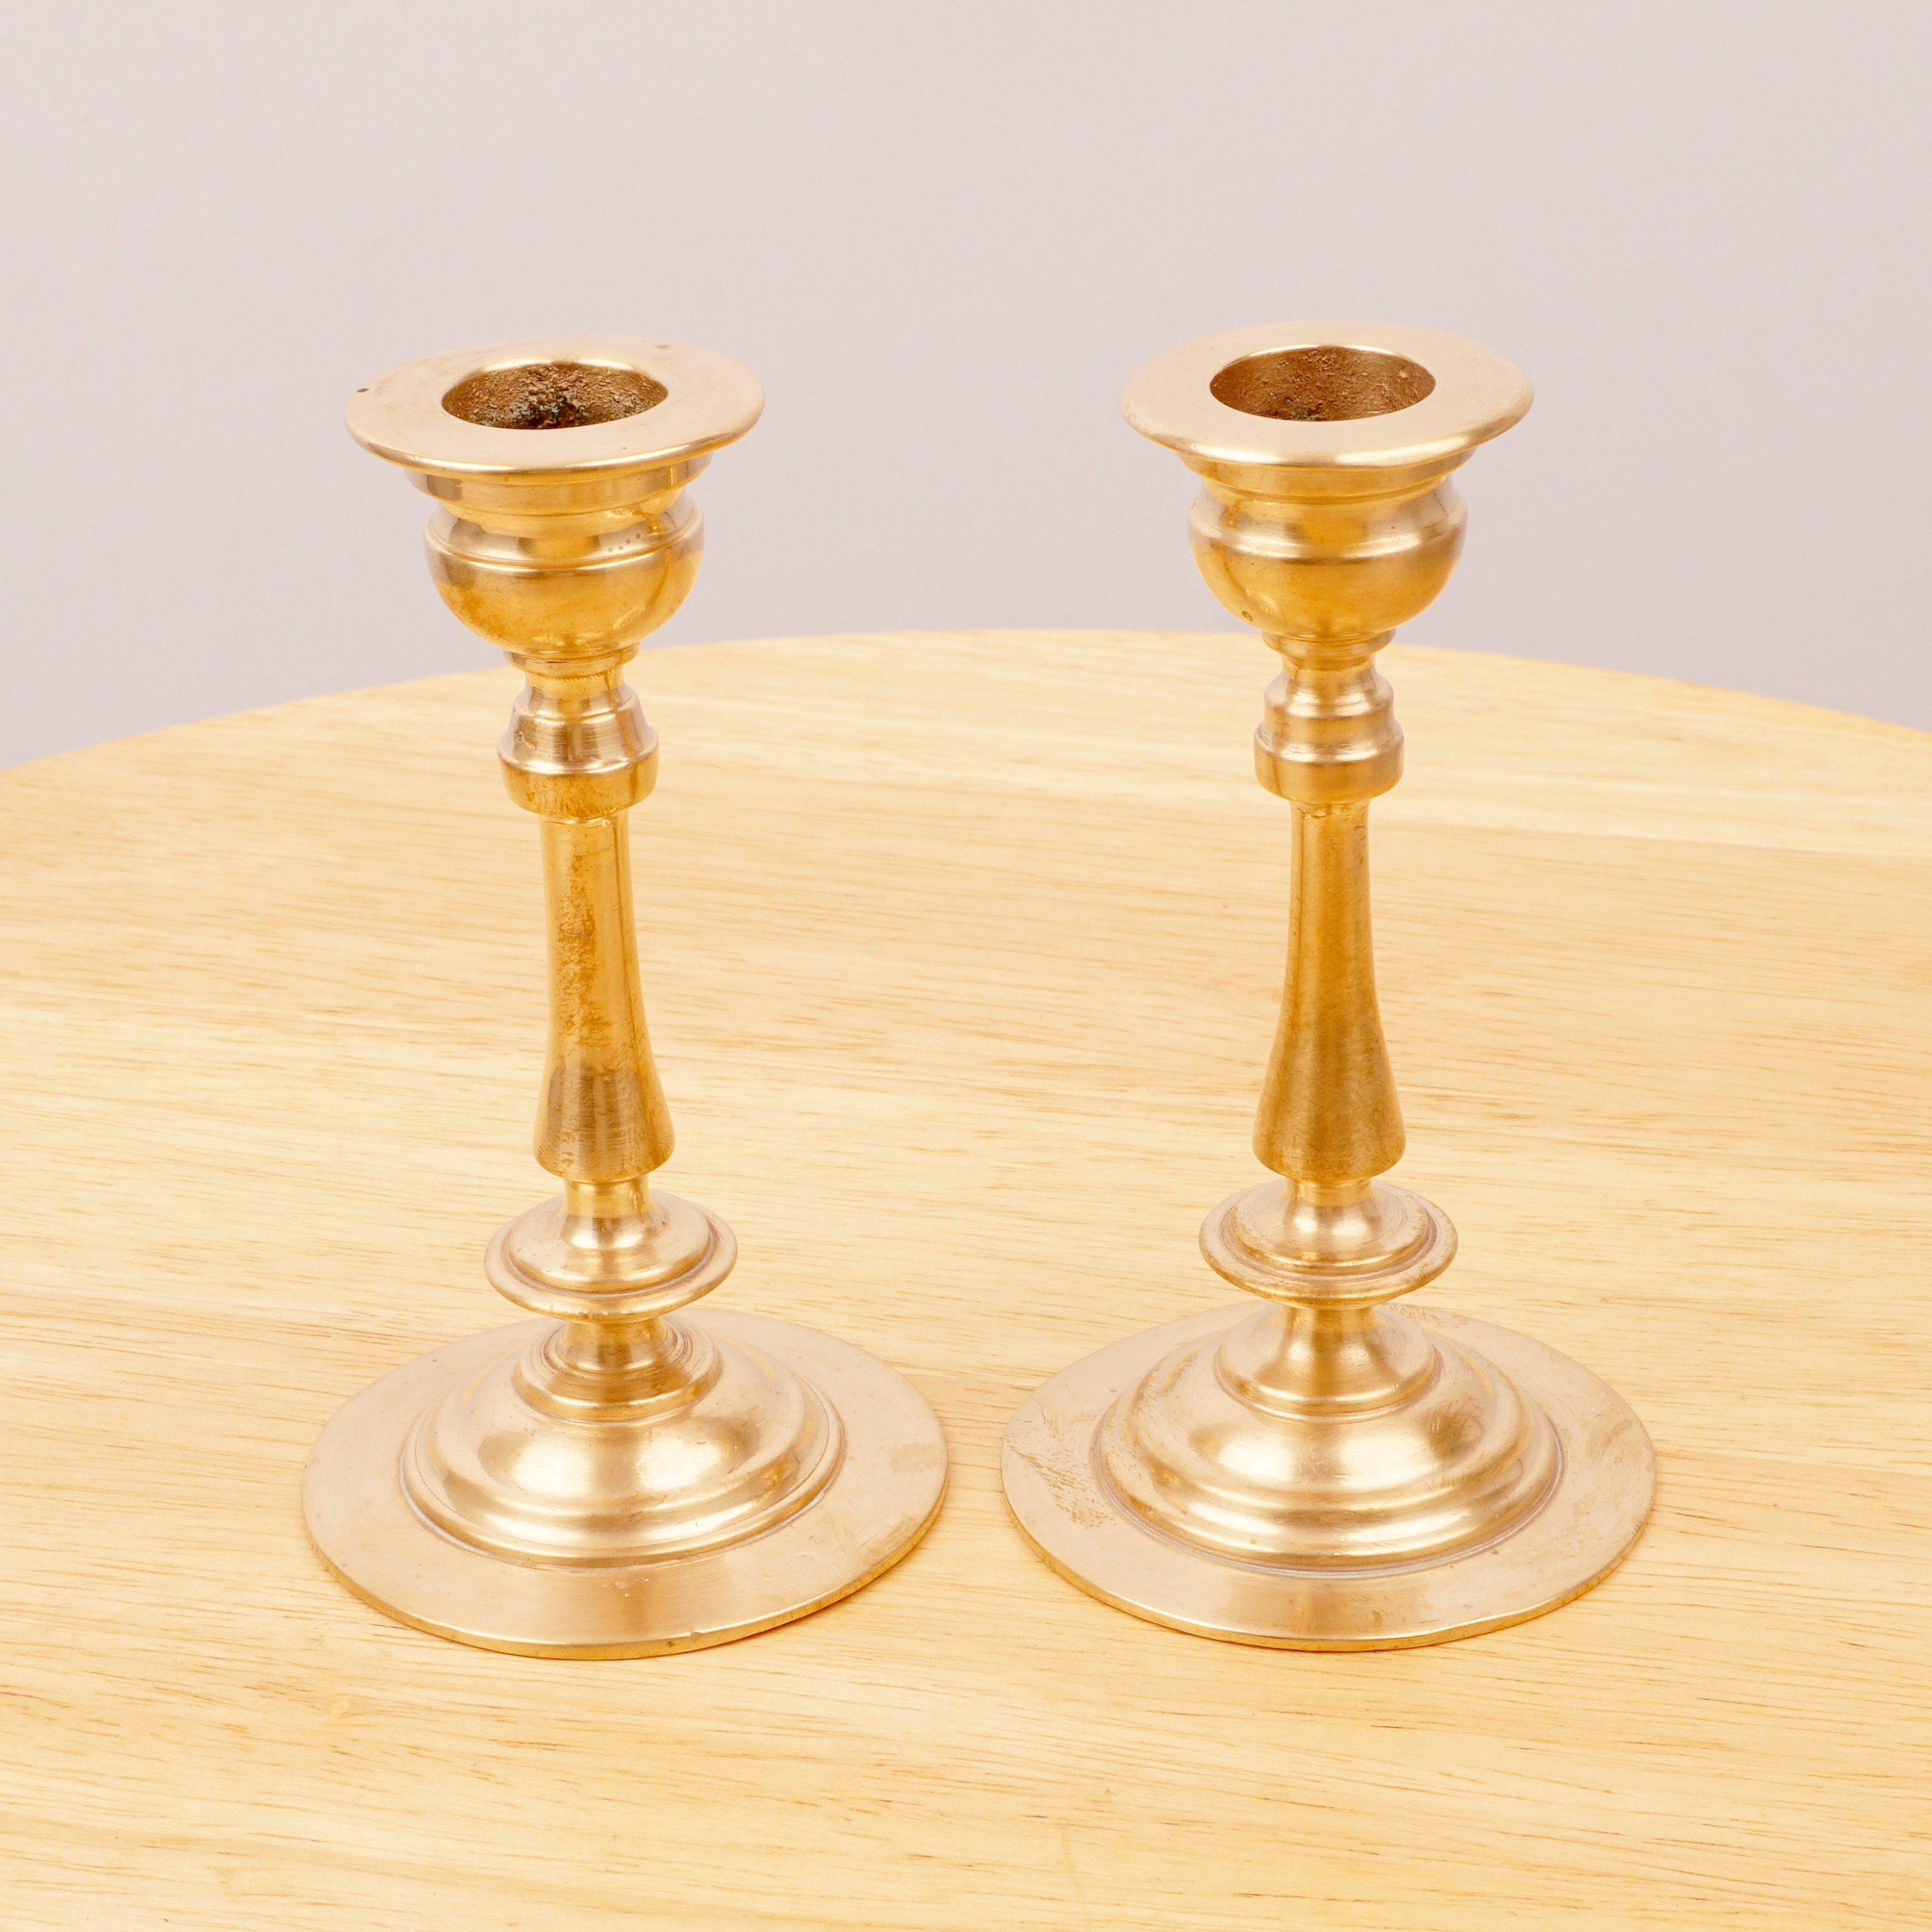 Image of 2 Candlestick Holders / Candle holder Vintage Solid Brass Midsize candle holders for regular size candles Pair of candle holders